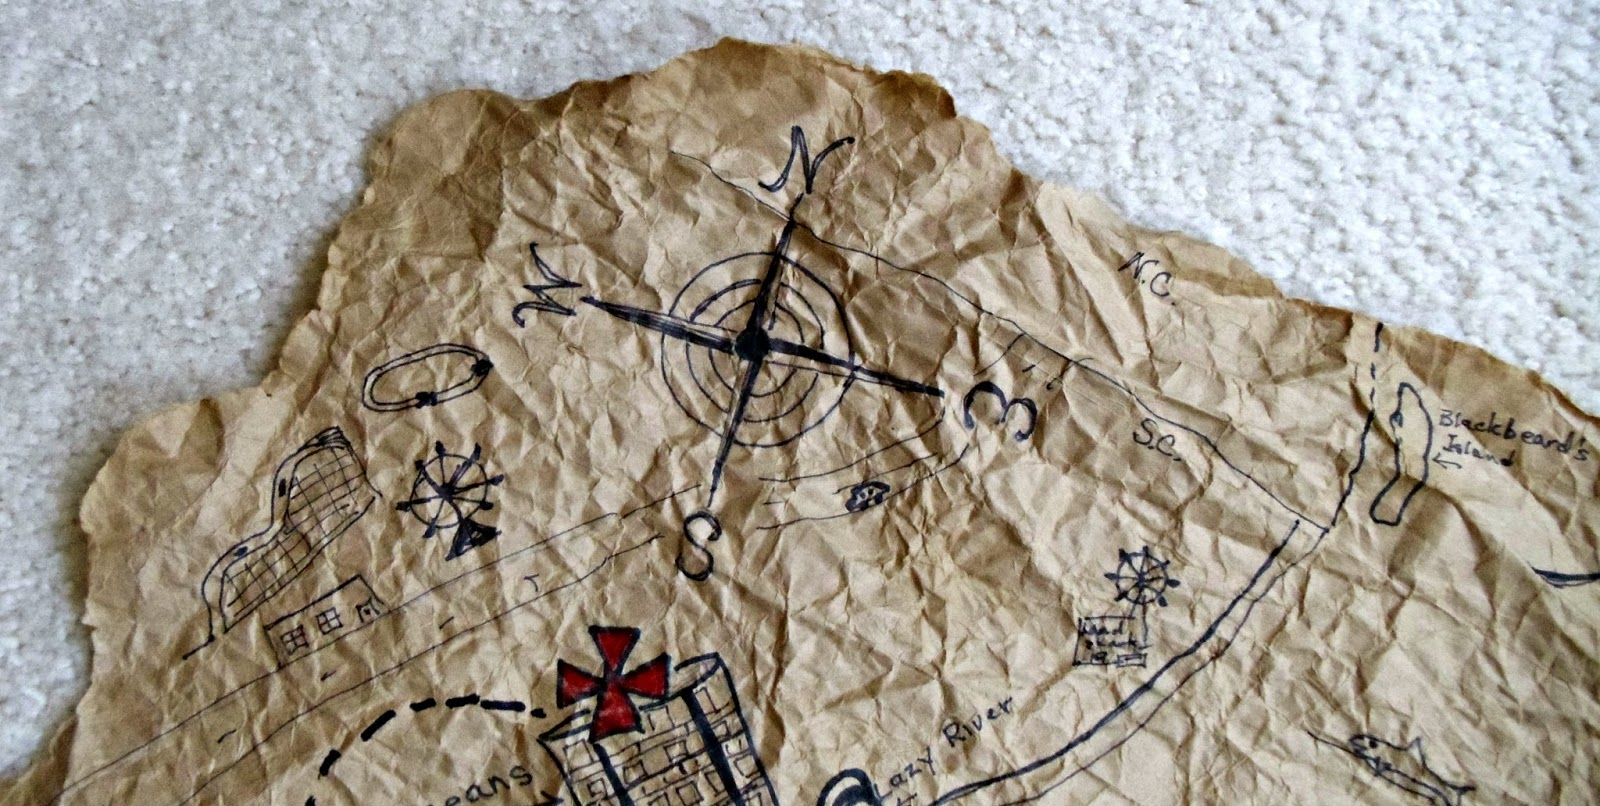 Upstairs Downstairs How To Make A Pirate S Treasure Chest And Map